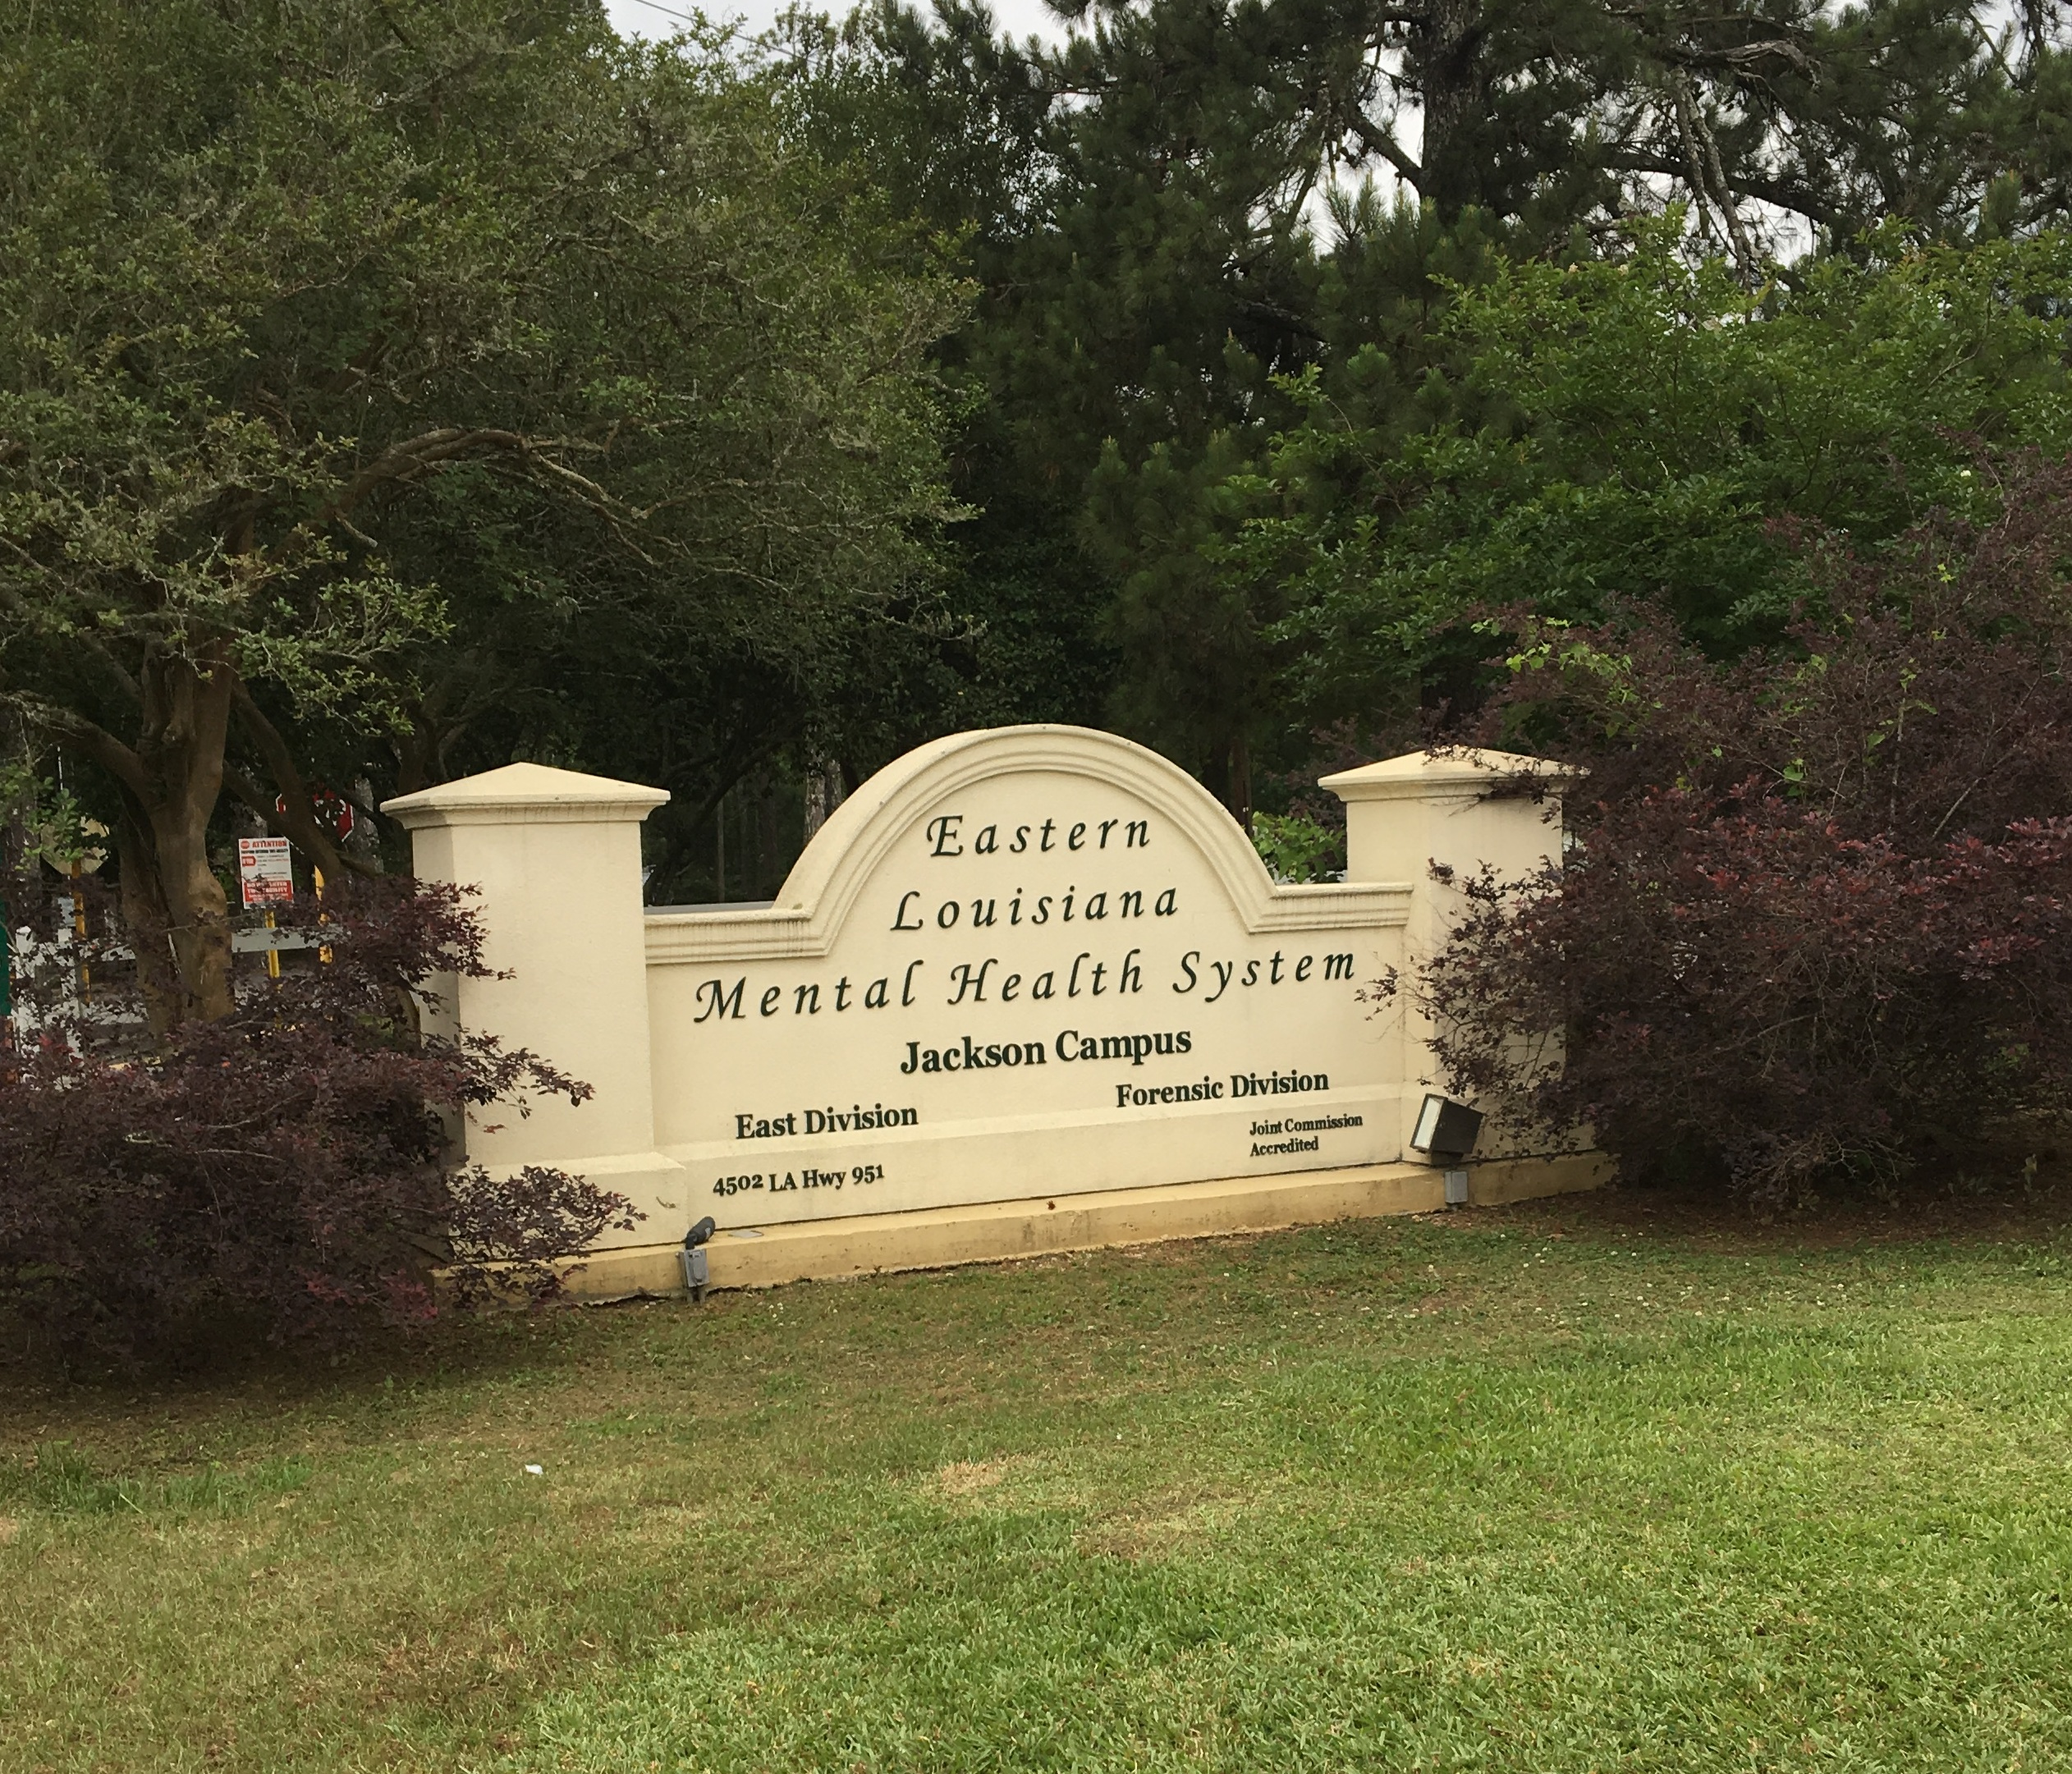 Eastern Louisiana Mental Health System Department Of Health